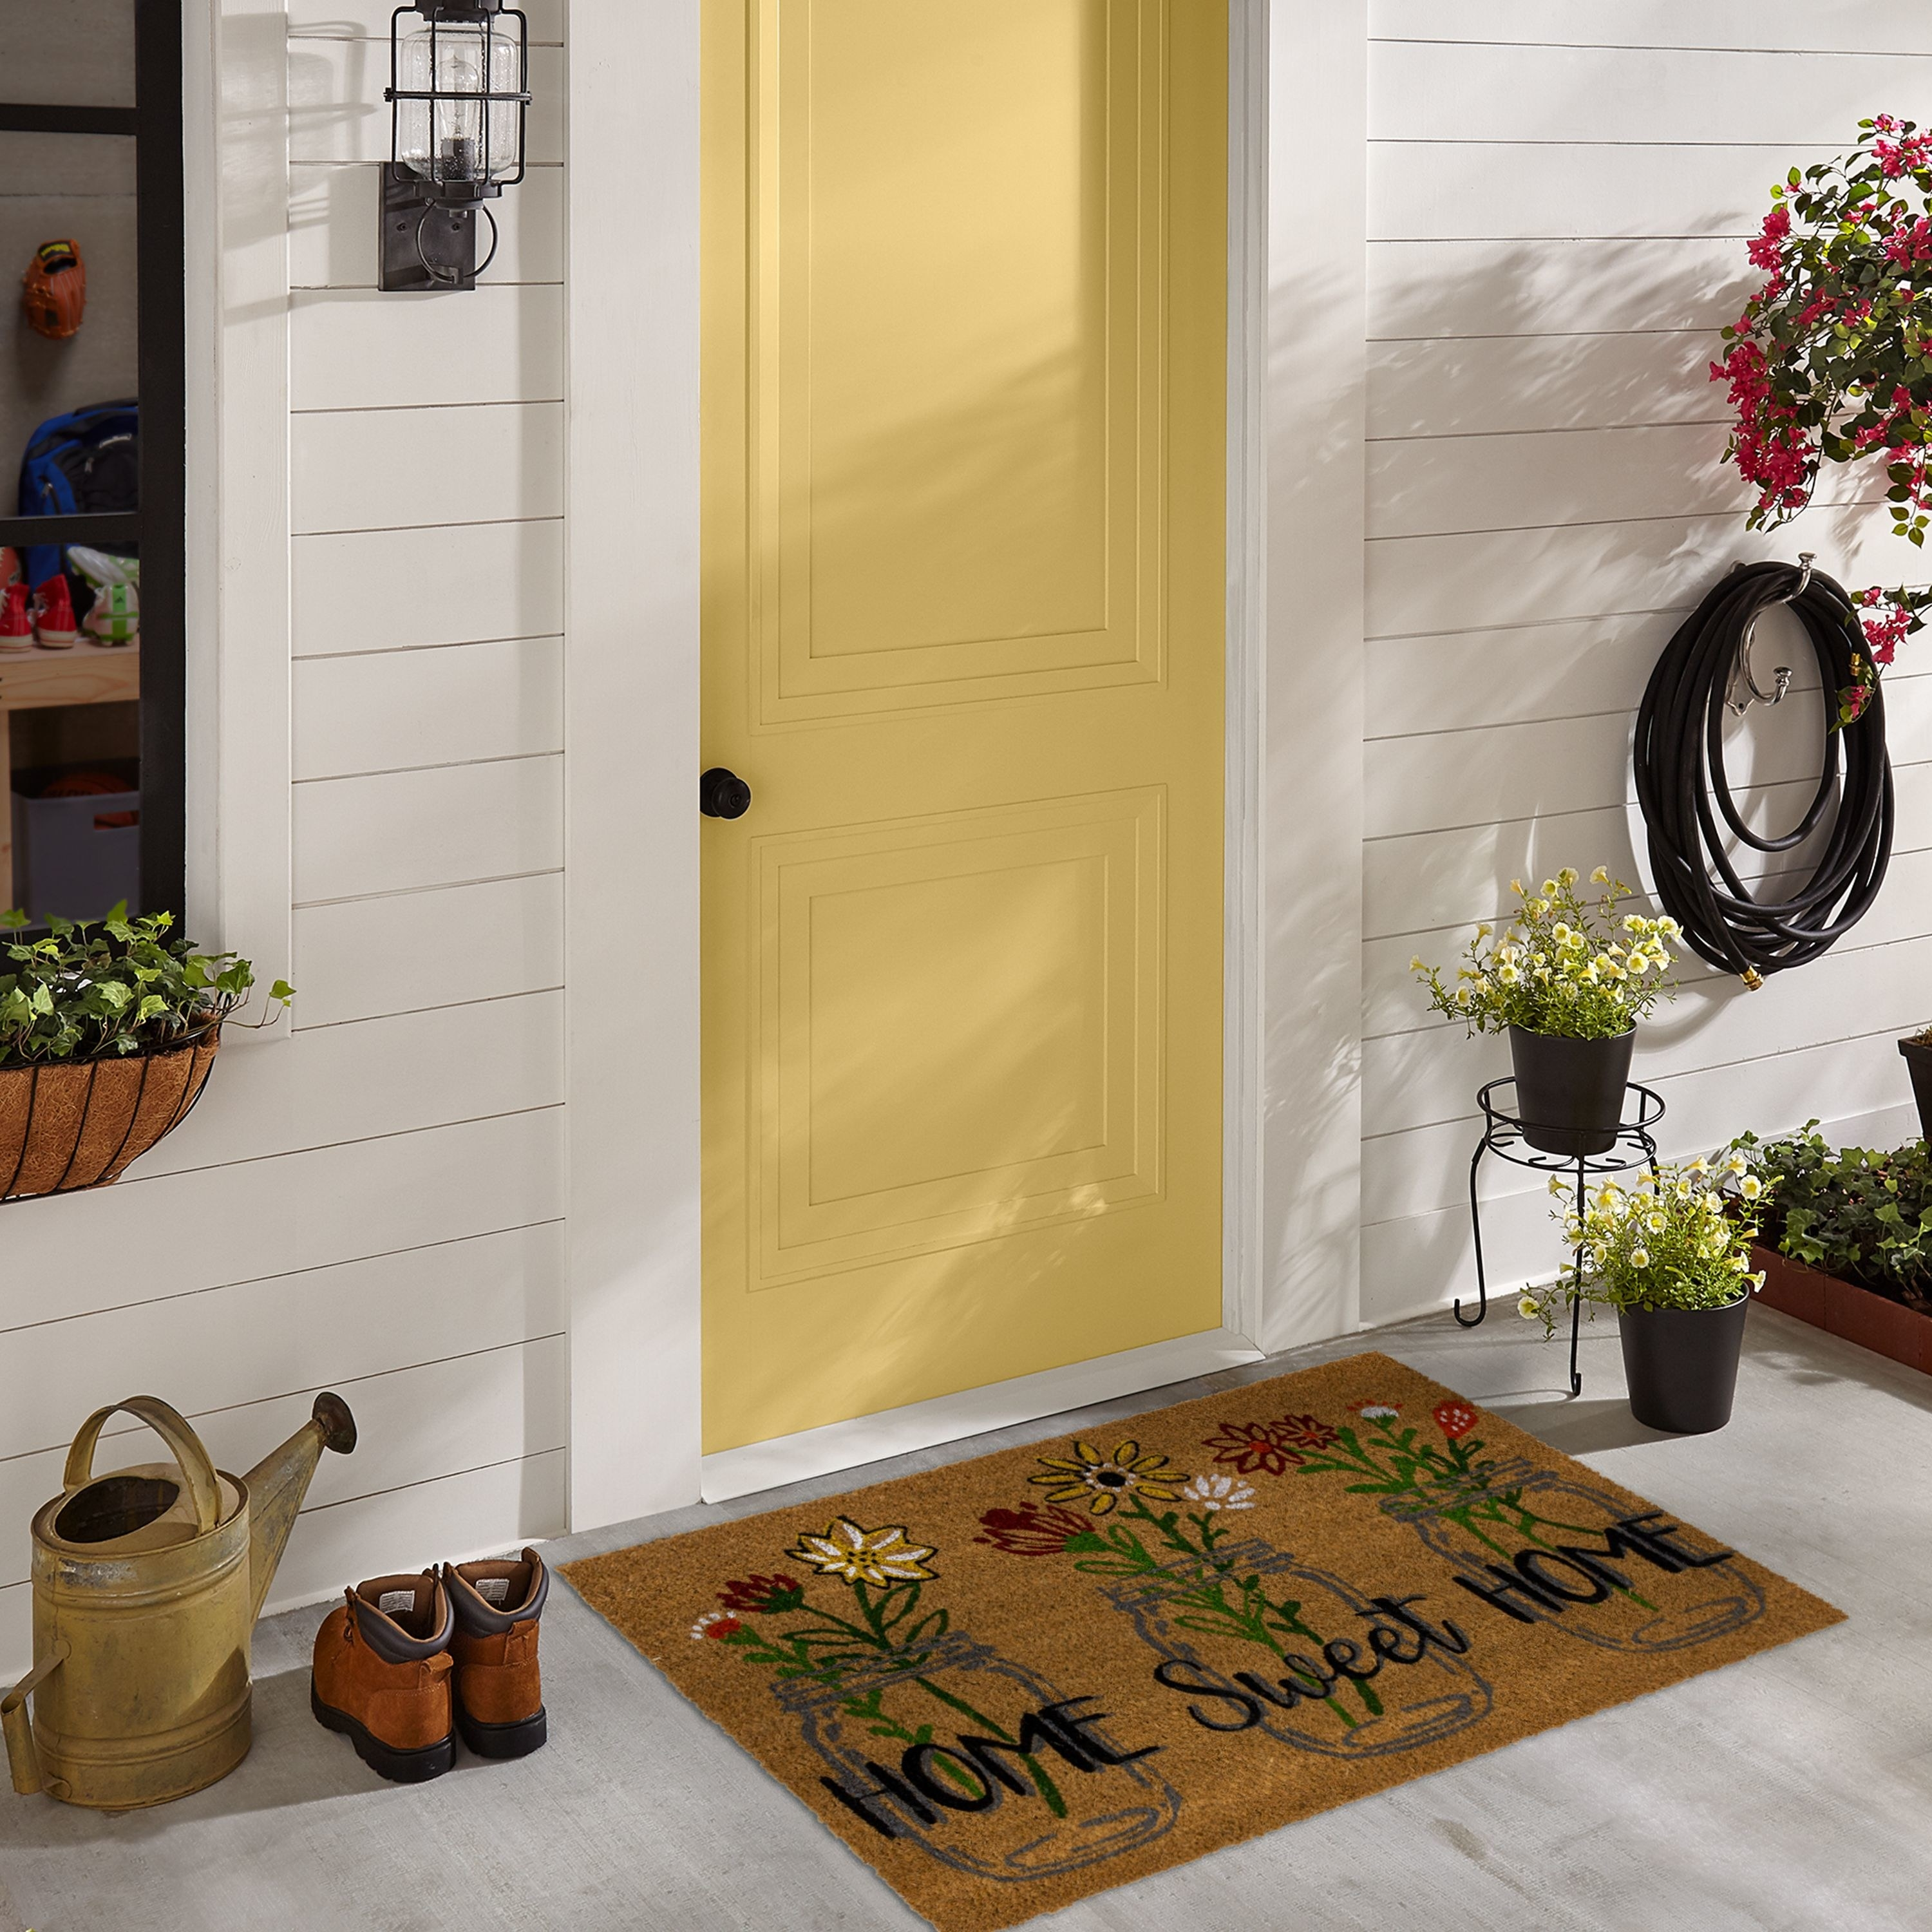 """a welcome mat with three mason jars filled with flowers on it and the words """"home sweet home"""""""